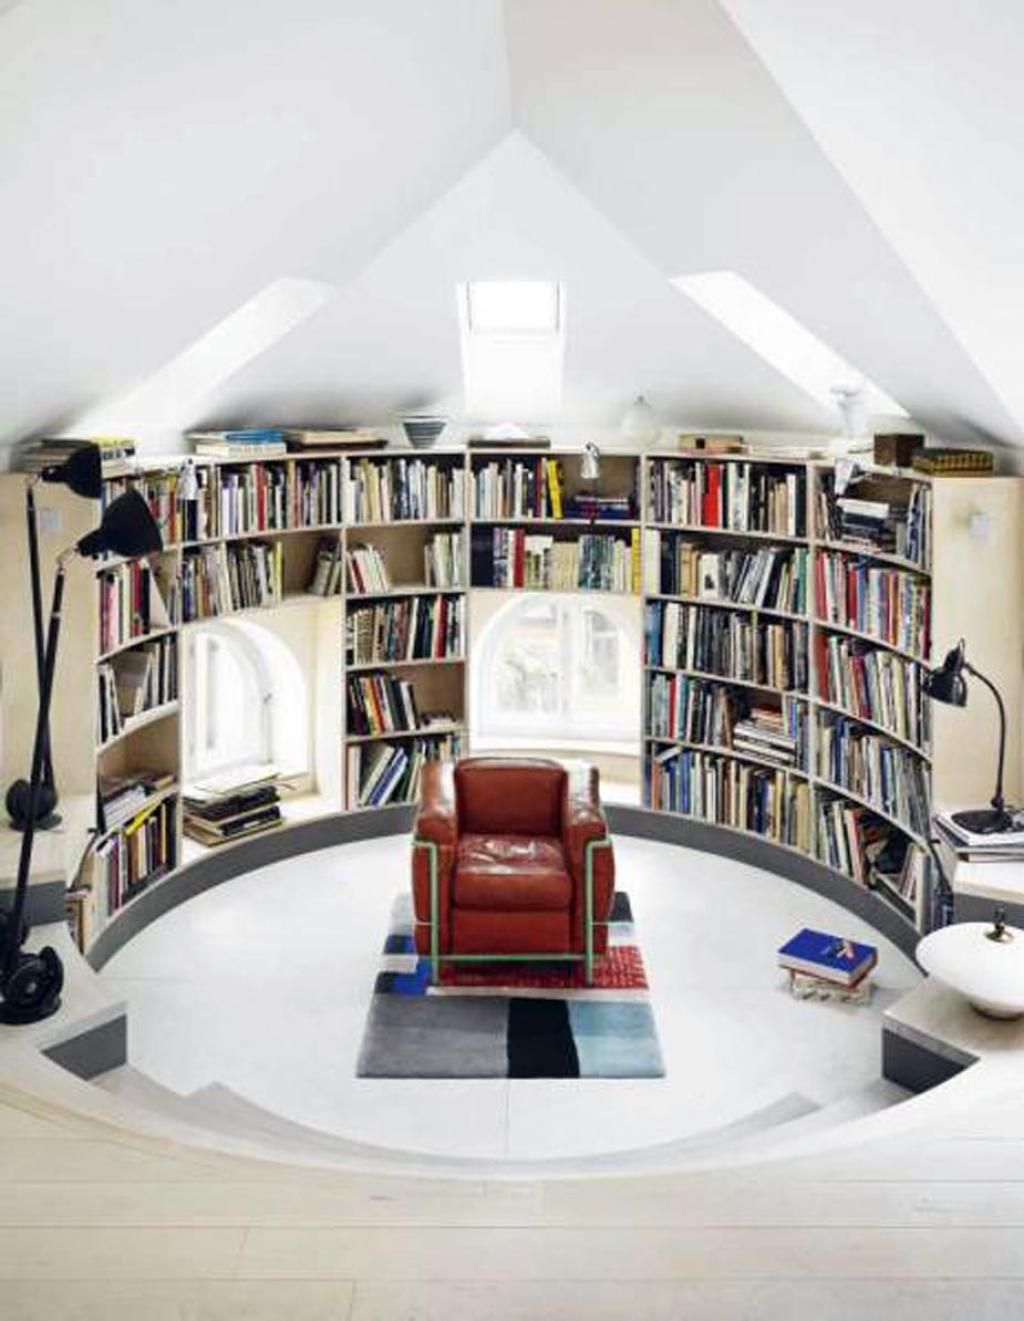 Fantastic Custom Home Library Design To Your House Cool In White Color Scheme Idea Modern Style Bookshelves Lthis Could